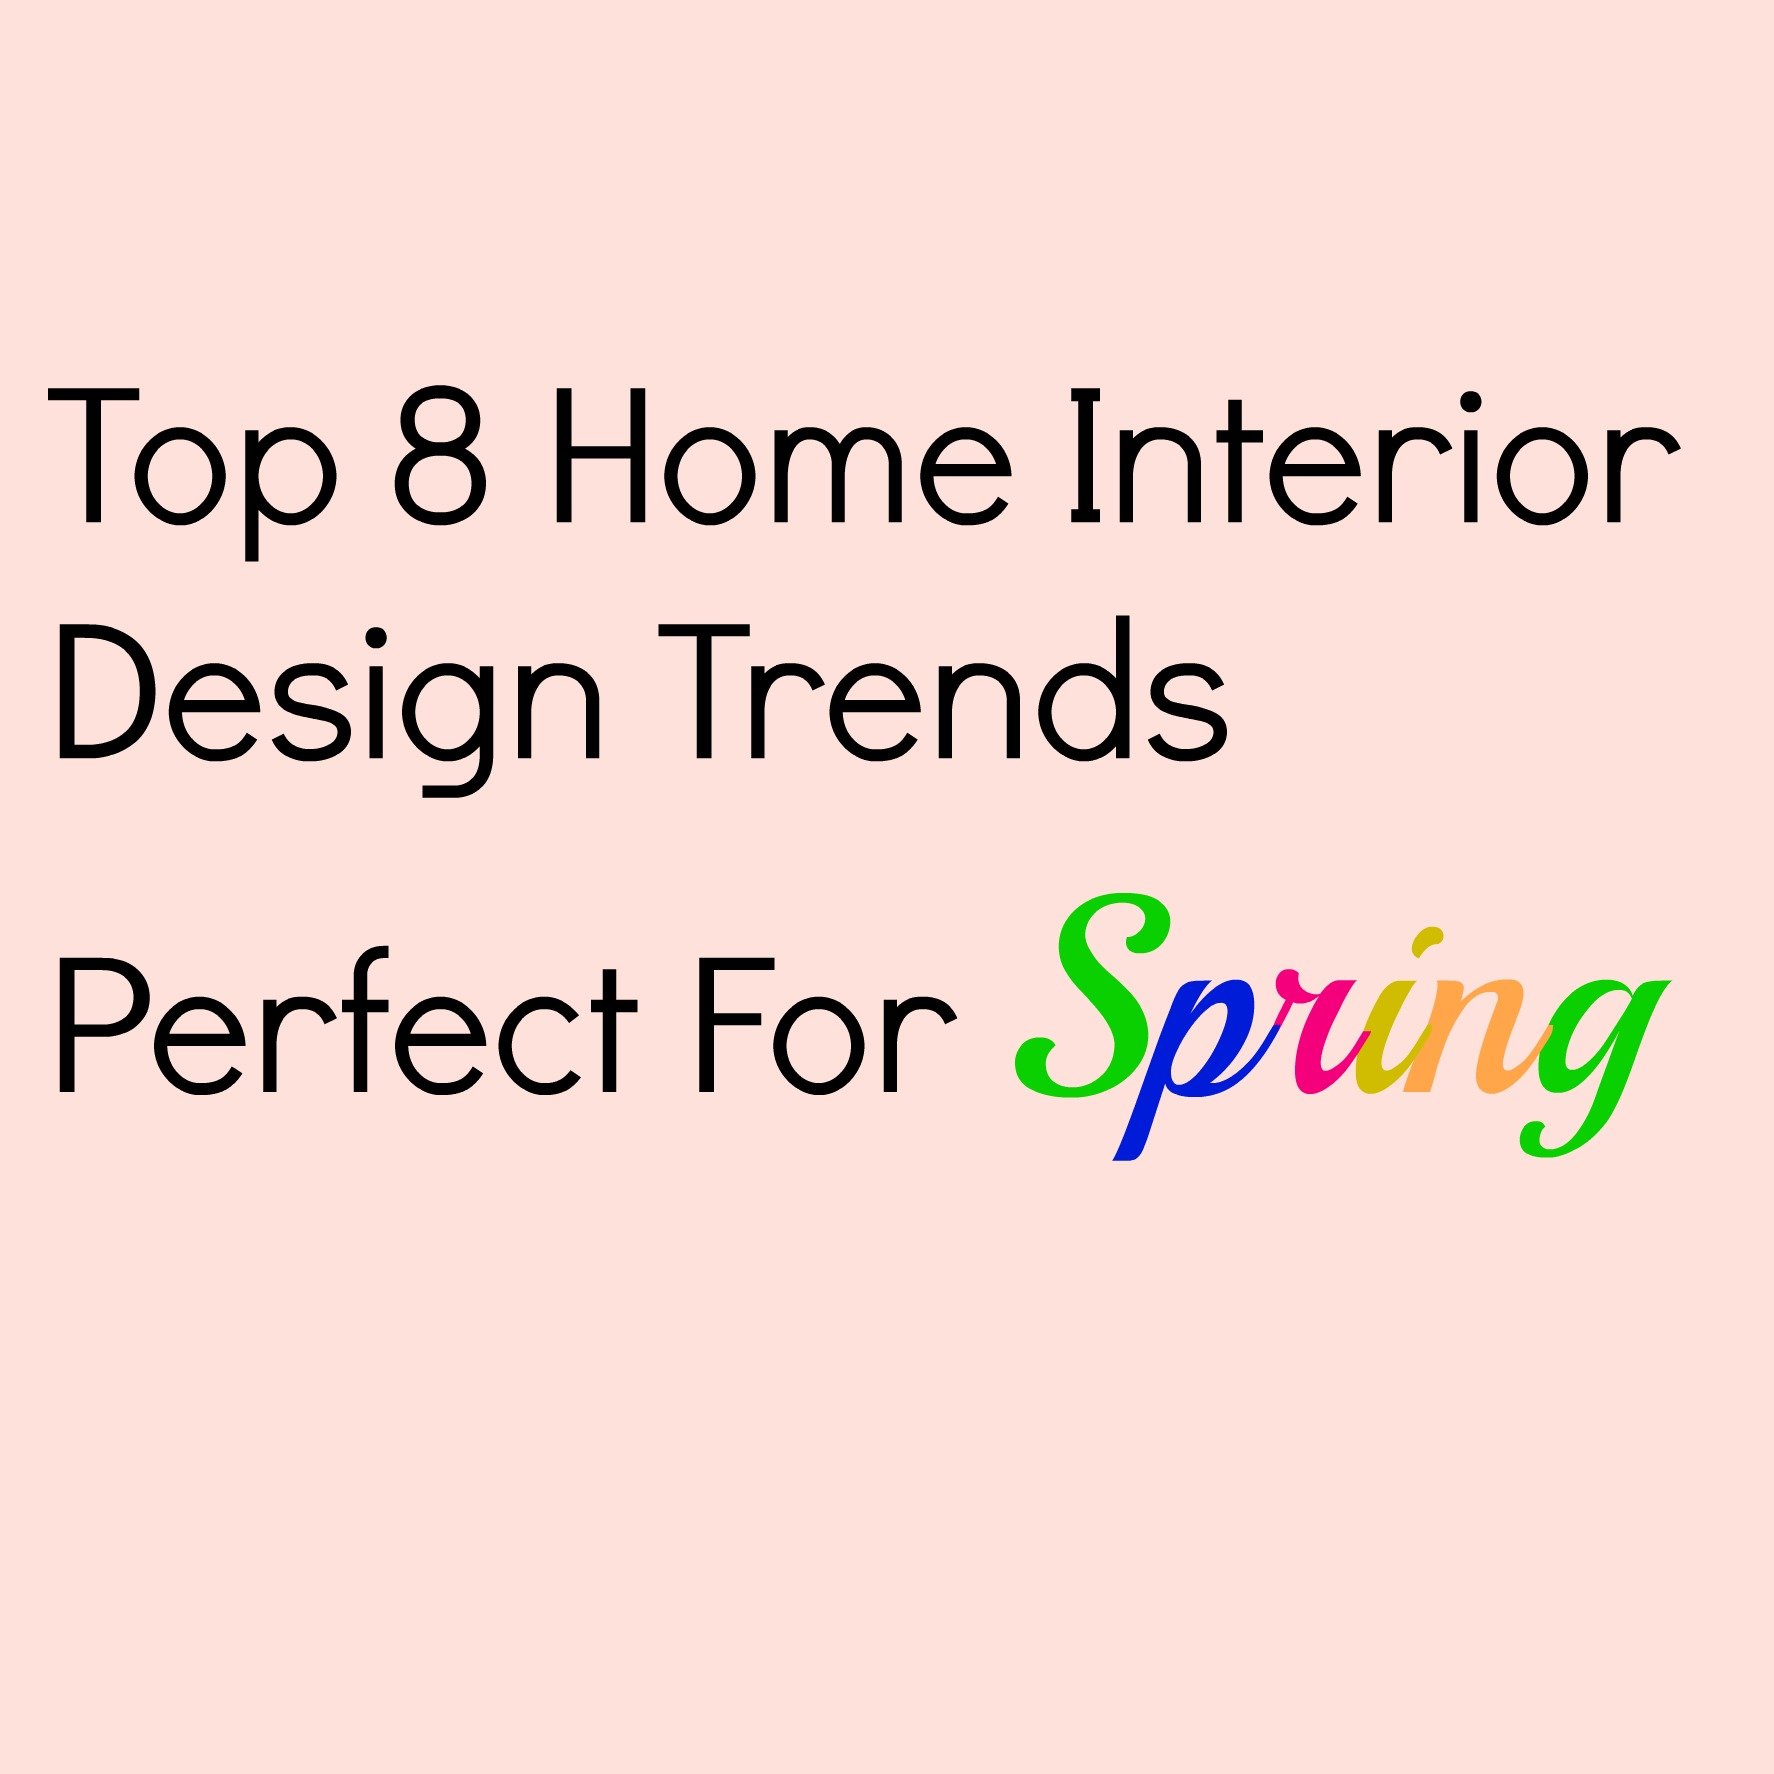 Top 8 Home Interior Design Trends Perfect For Spring